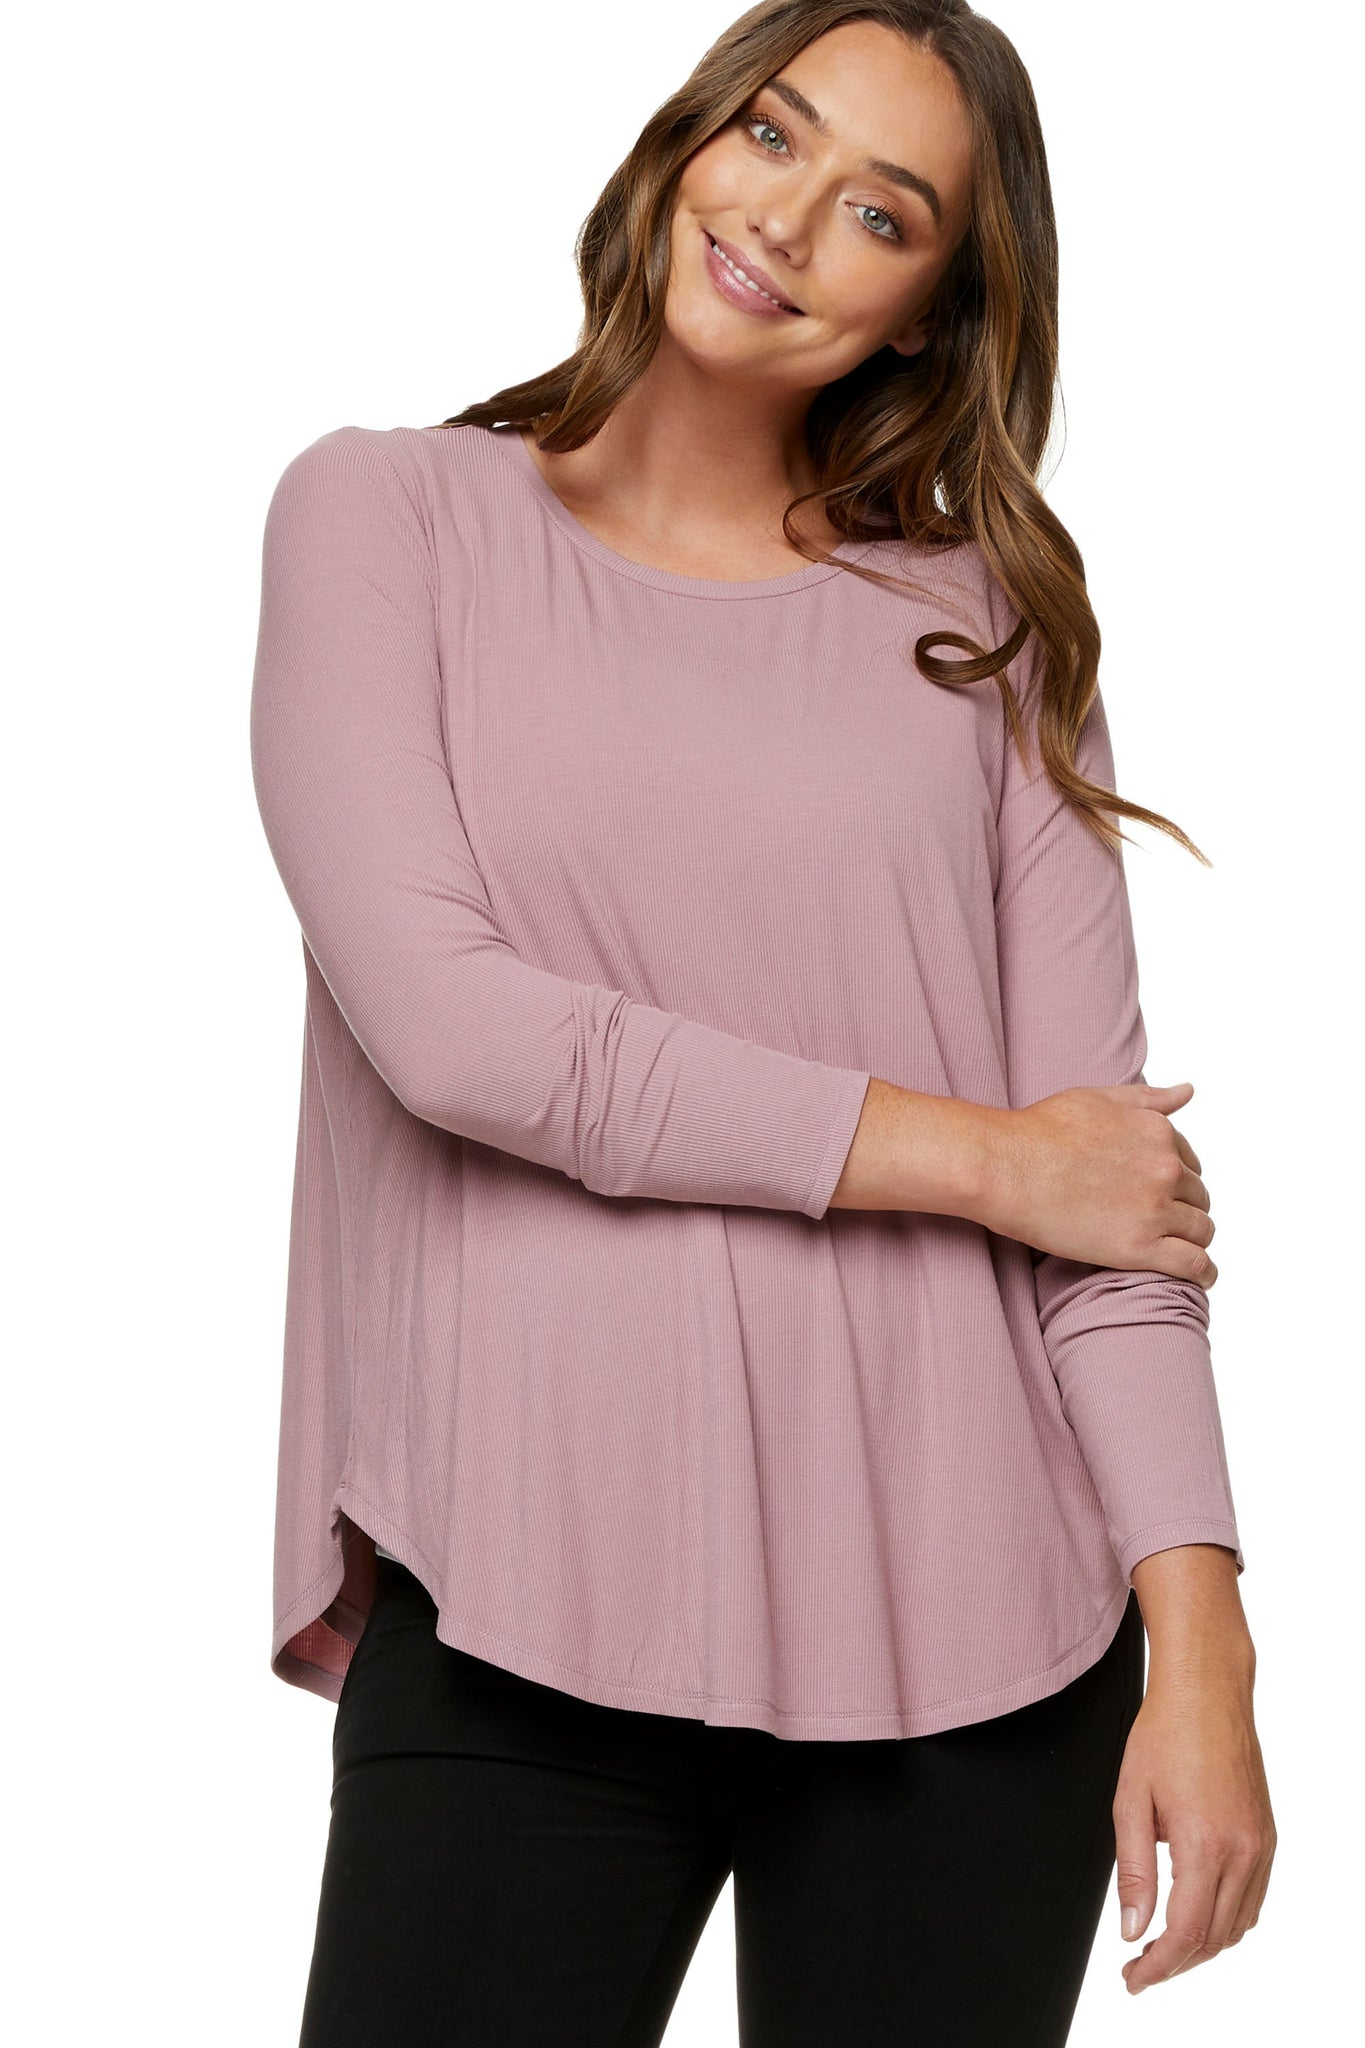 Maternity and Nursing Top Pink Image 9